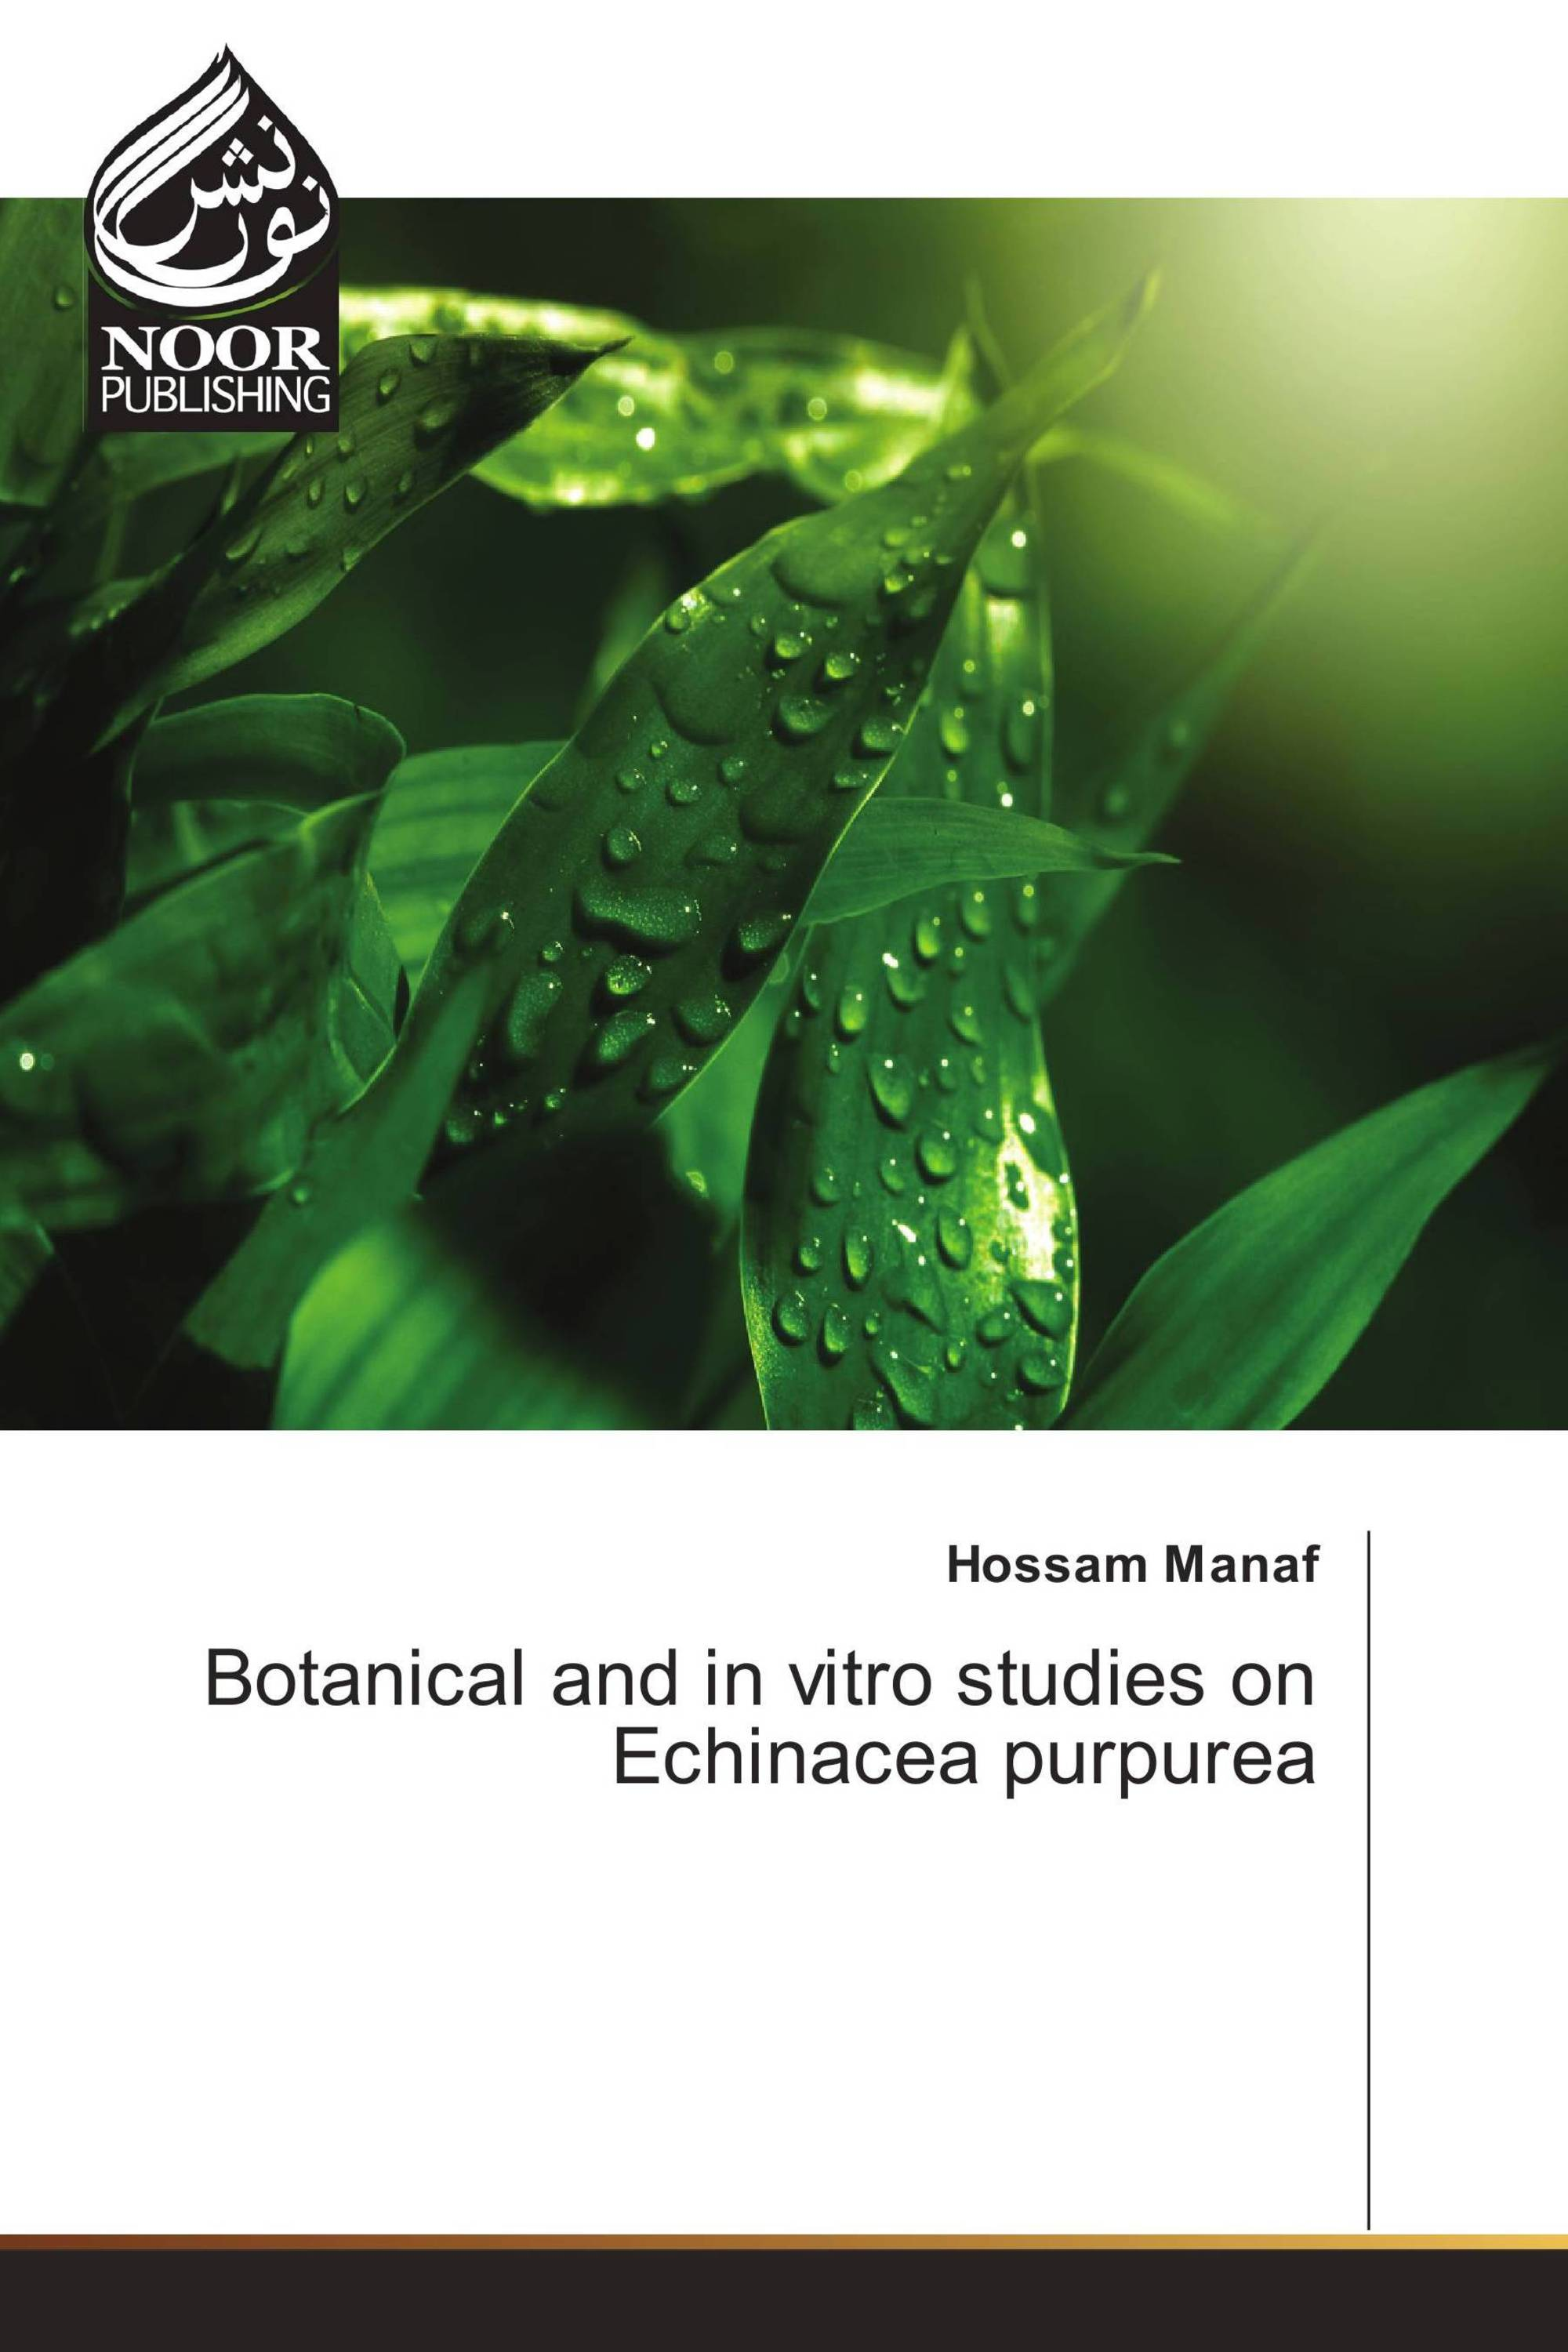 Botanical and in vitro studies on Echinacea purpurea